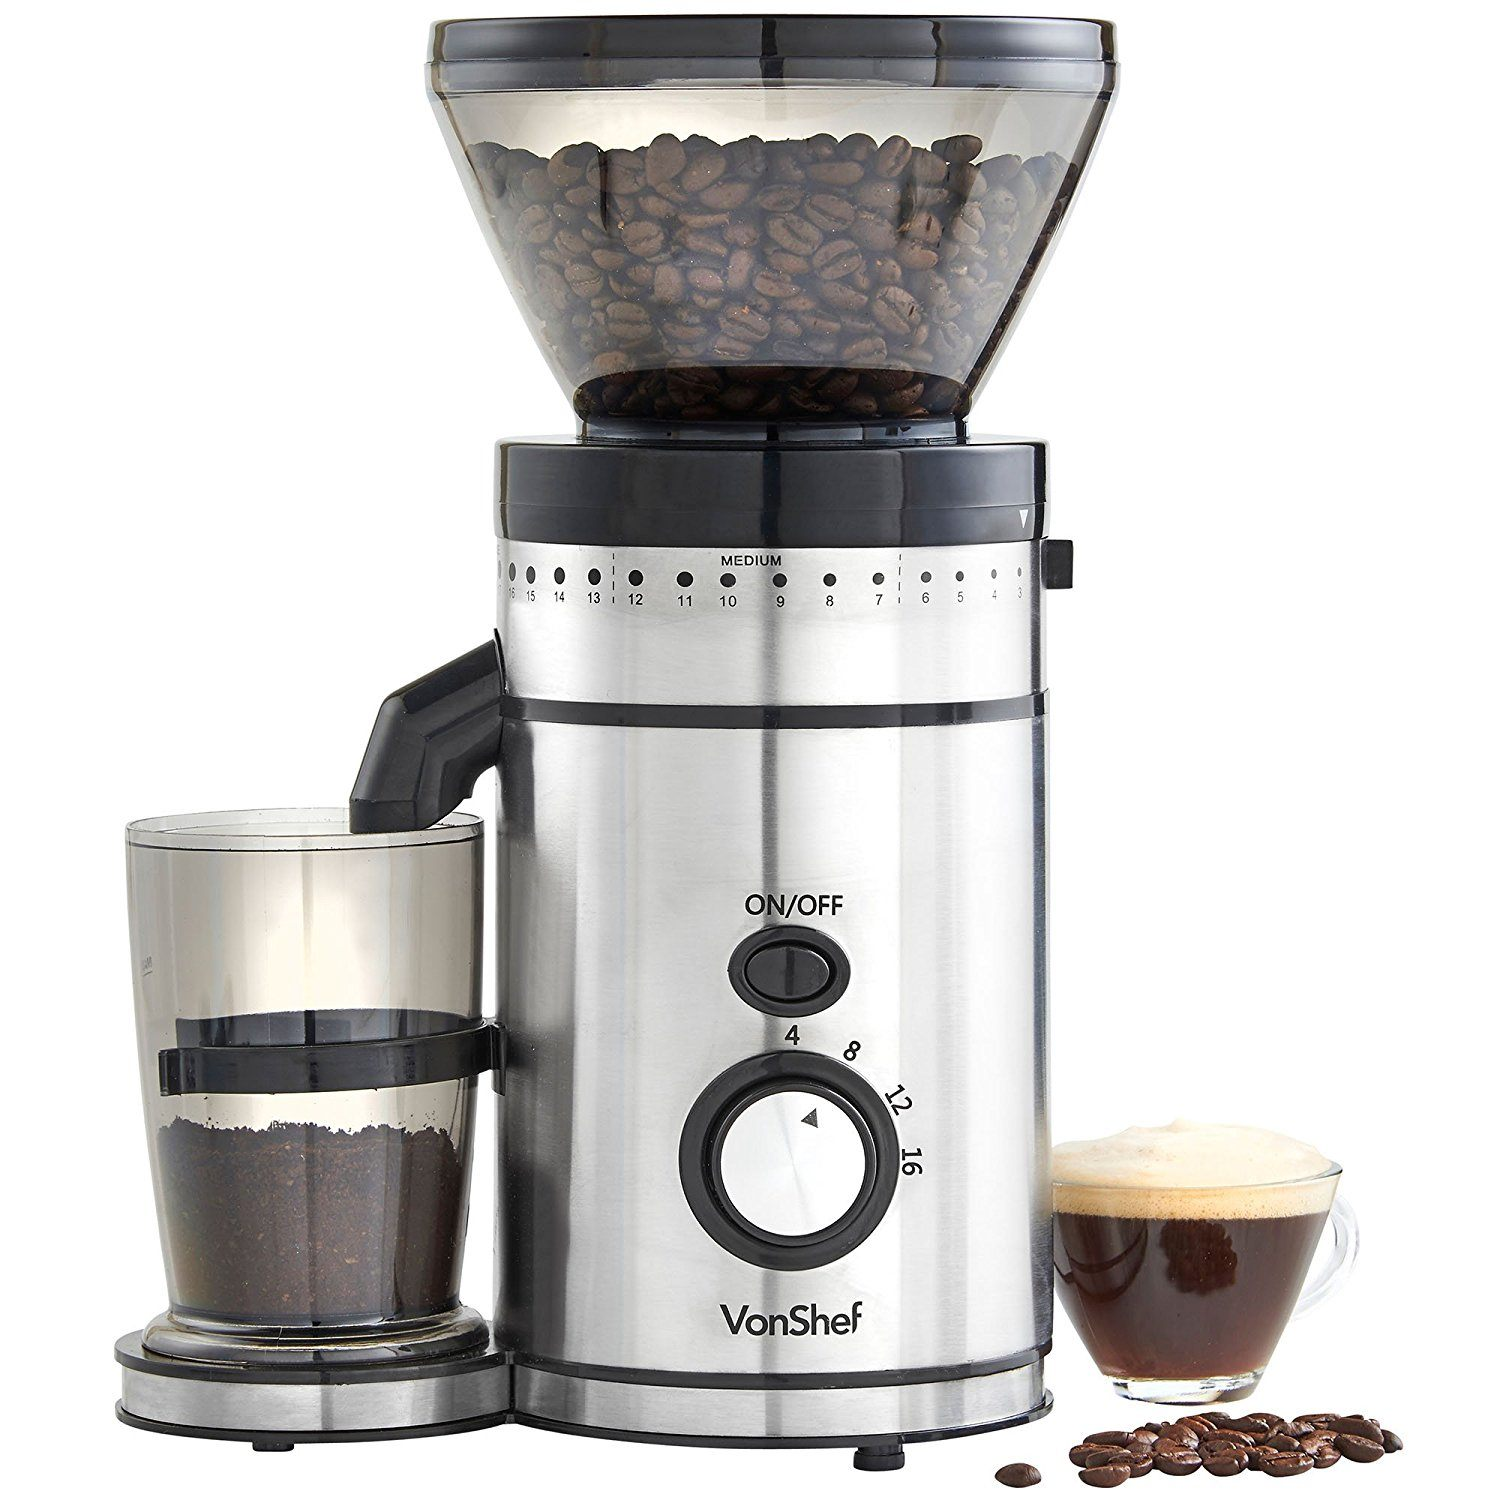 Vonshef Premium Burr Coffee Grinder Review The Perfect Grind